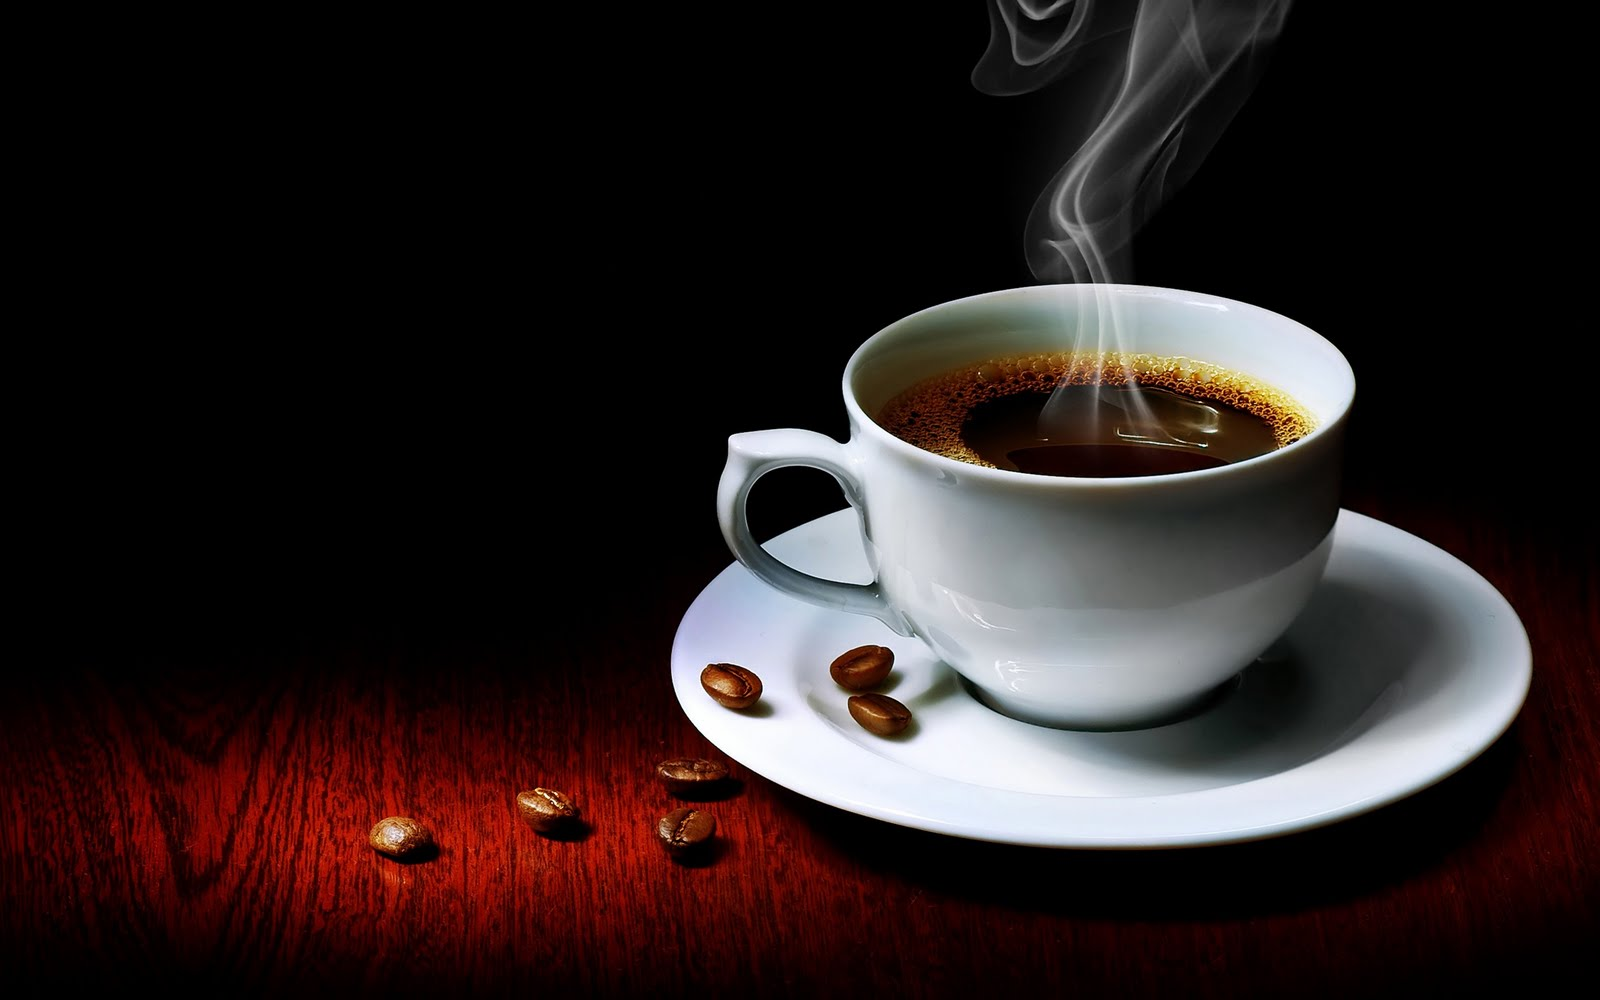 cup_of_coffee_2-2560x1600